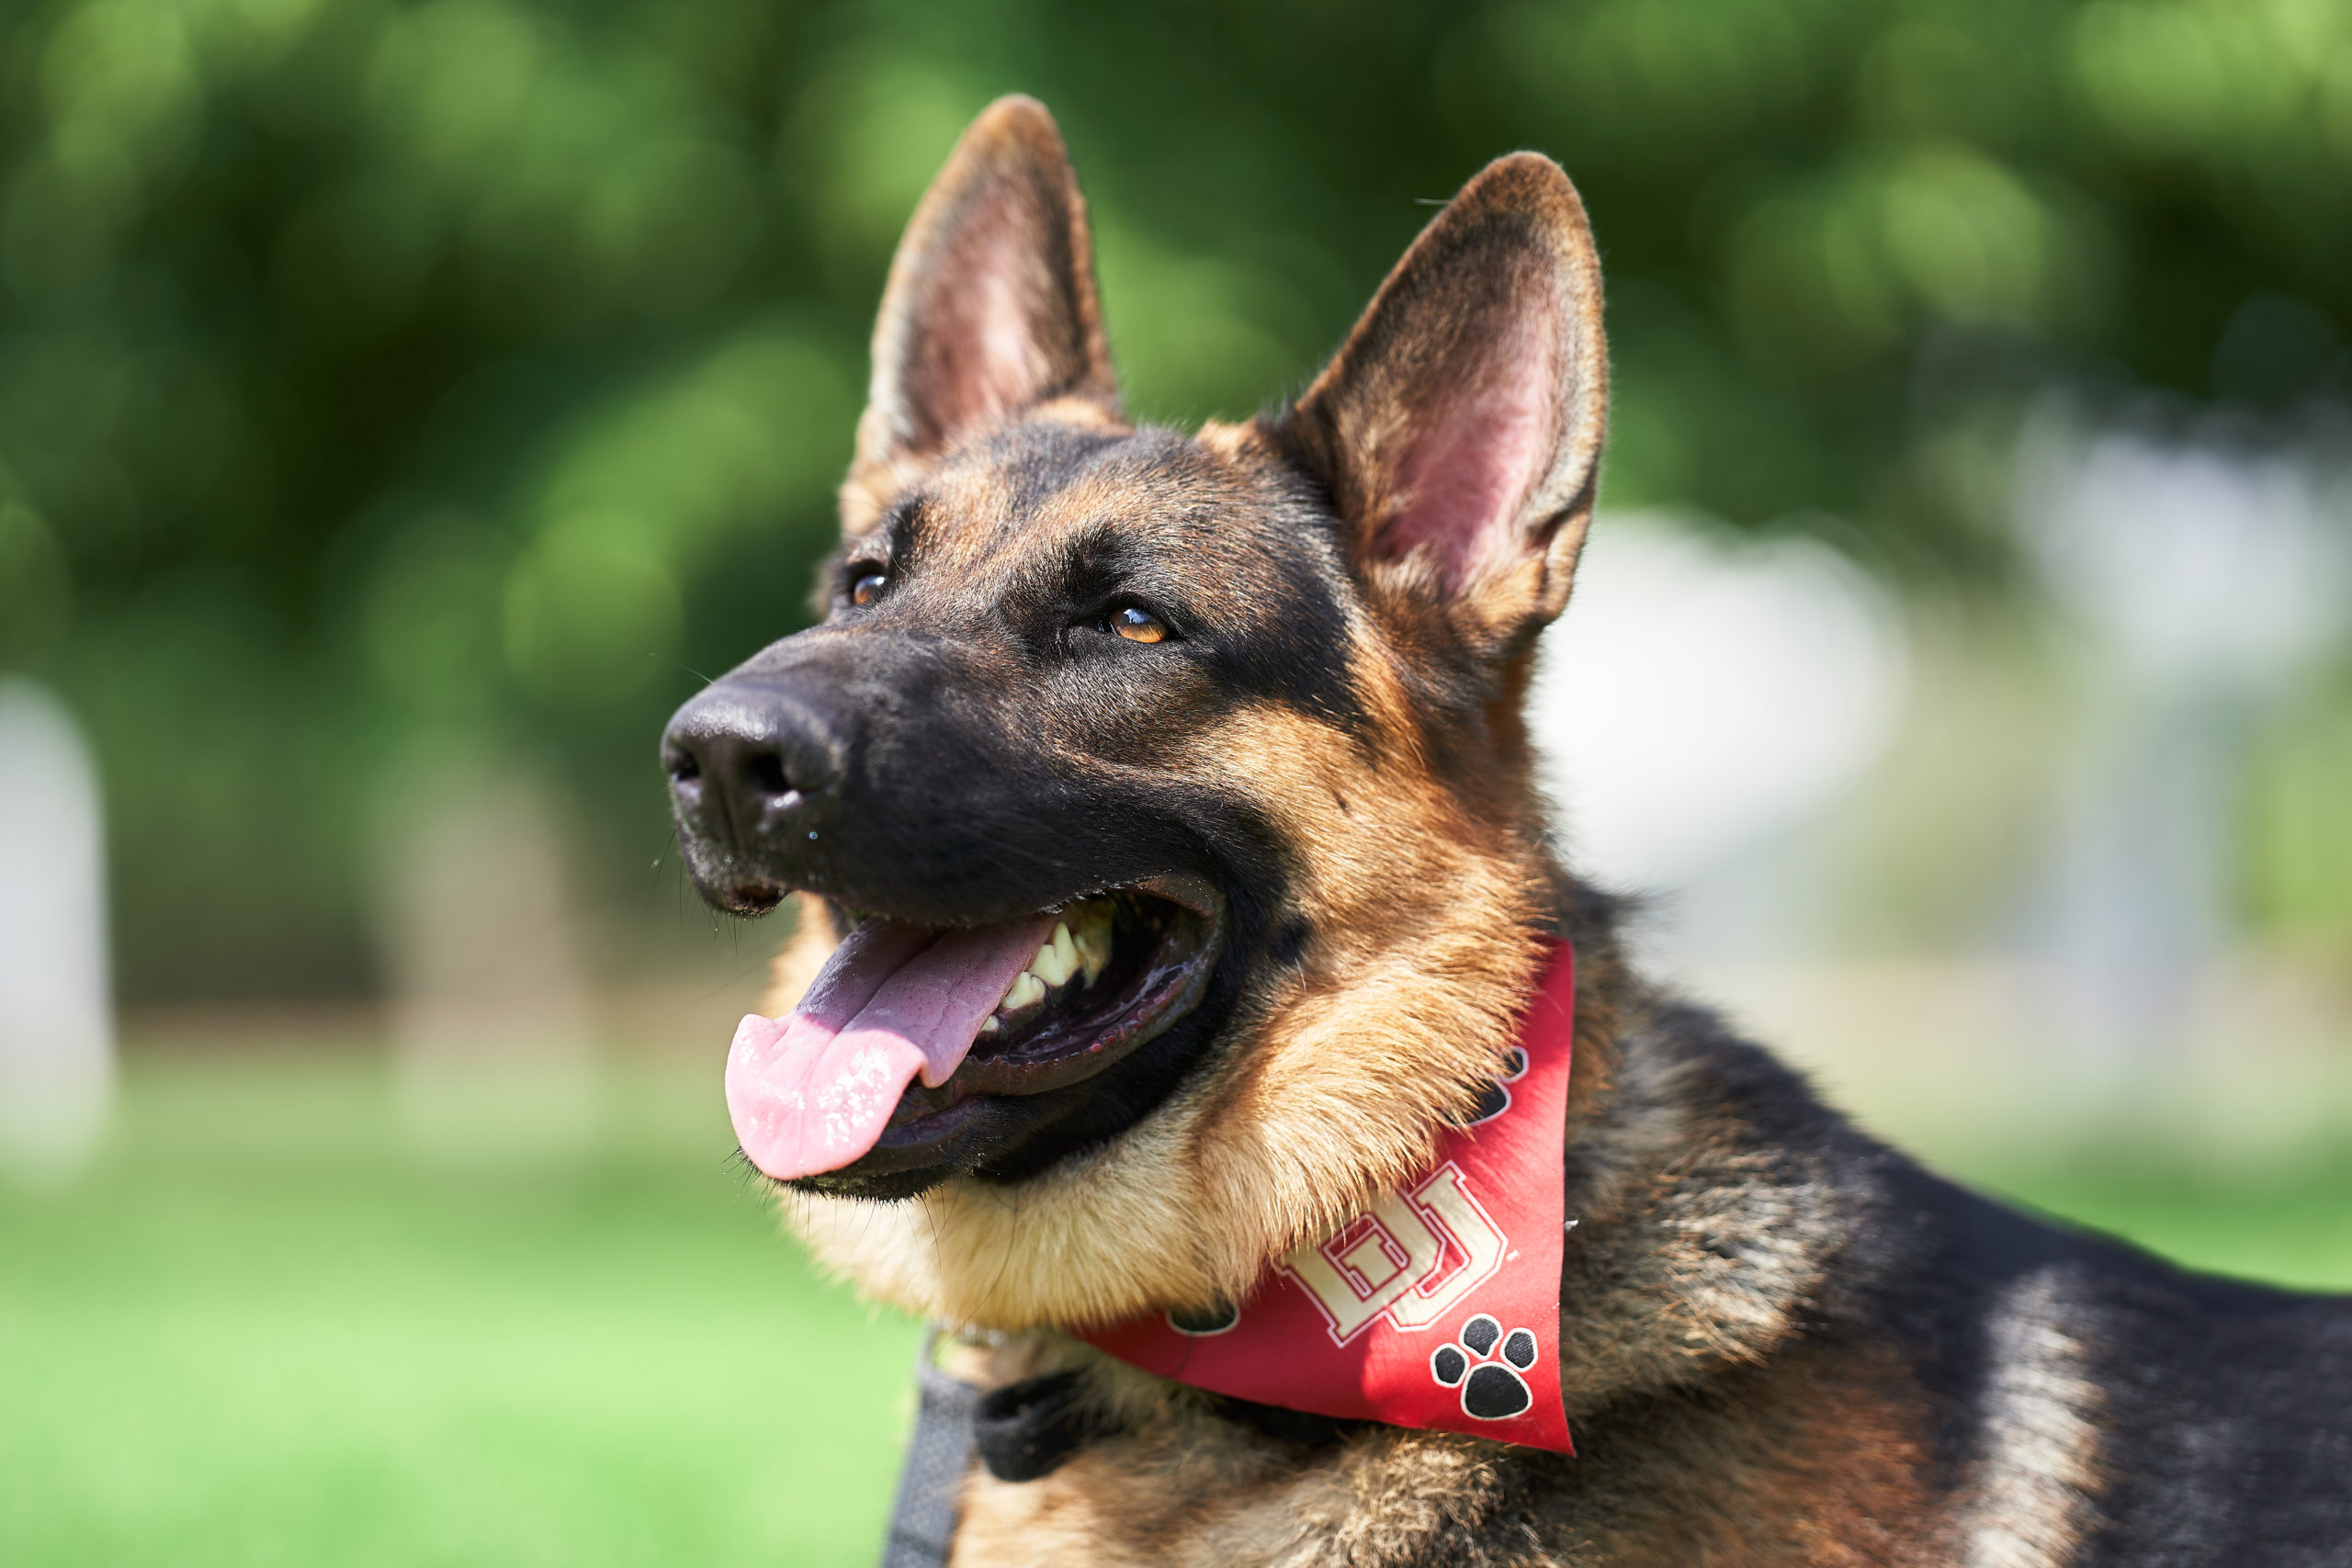 German shepherd dog behavior training